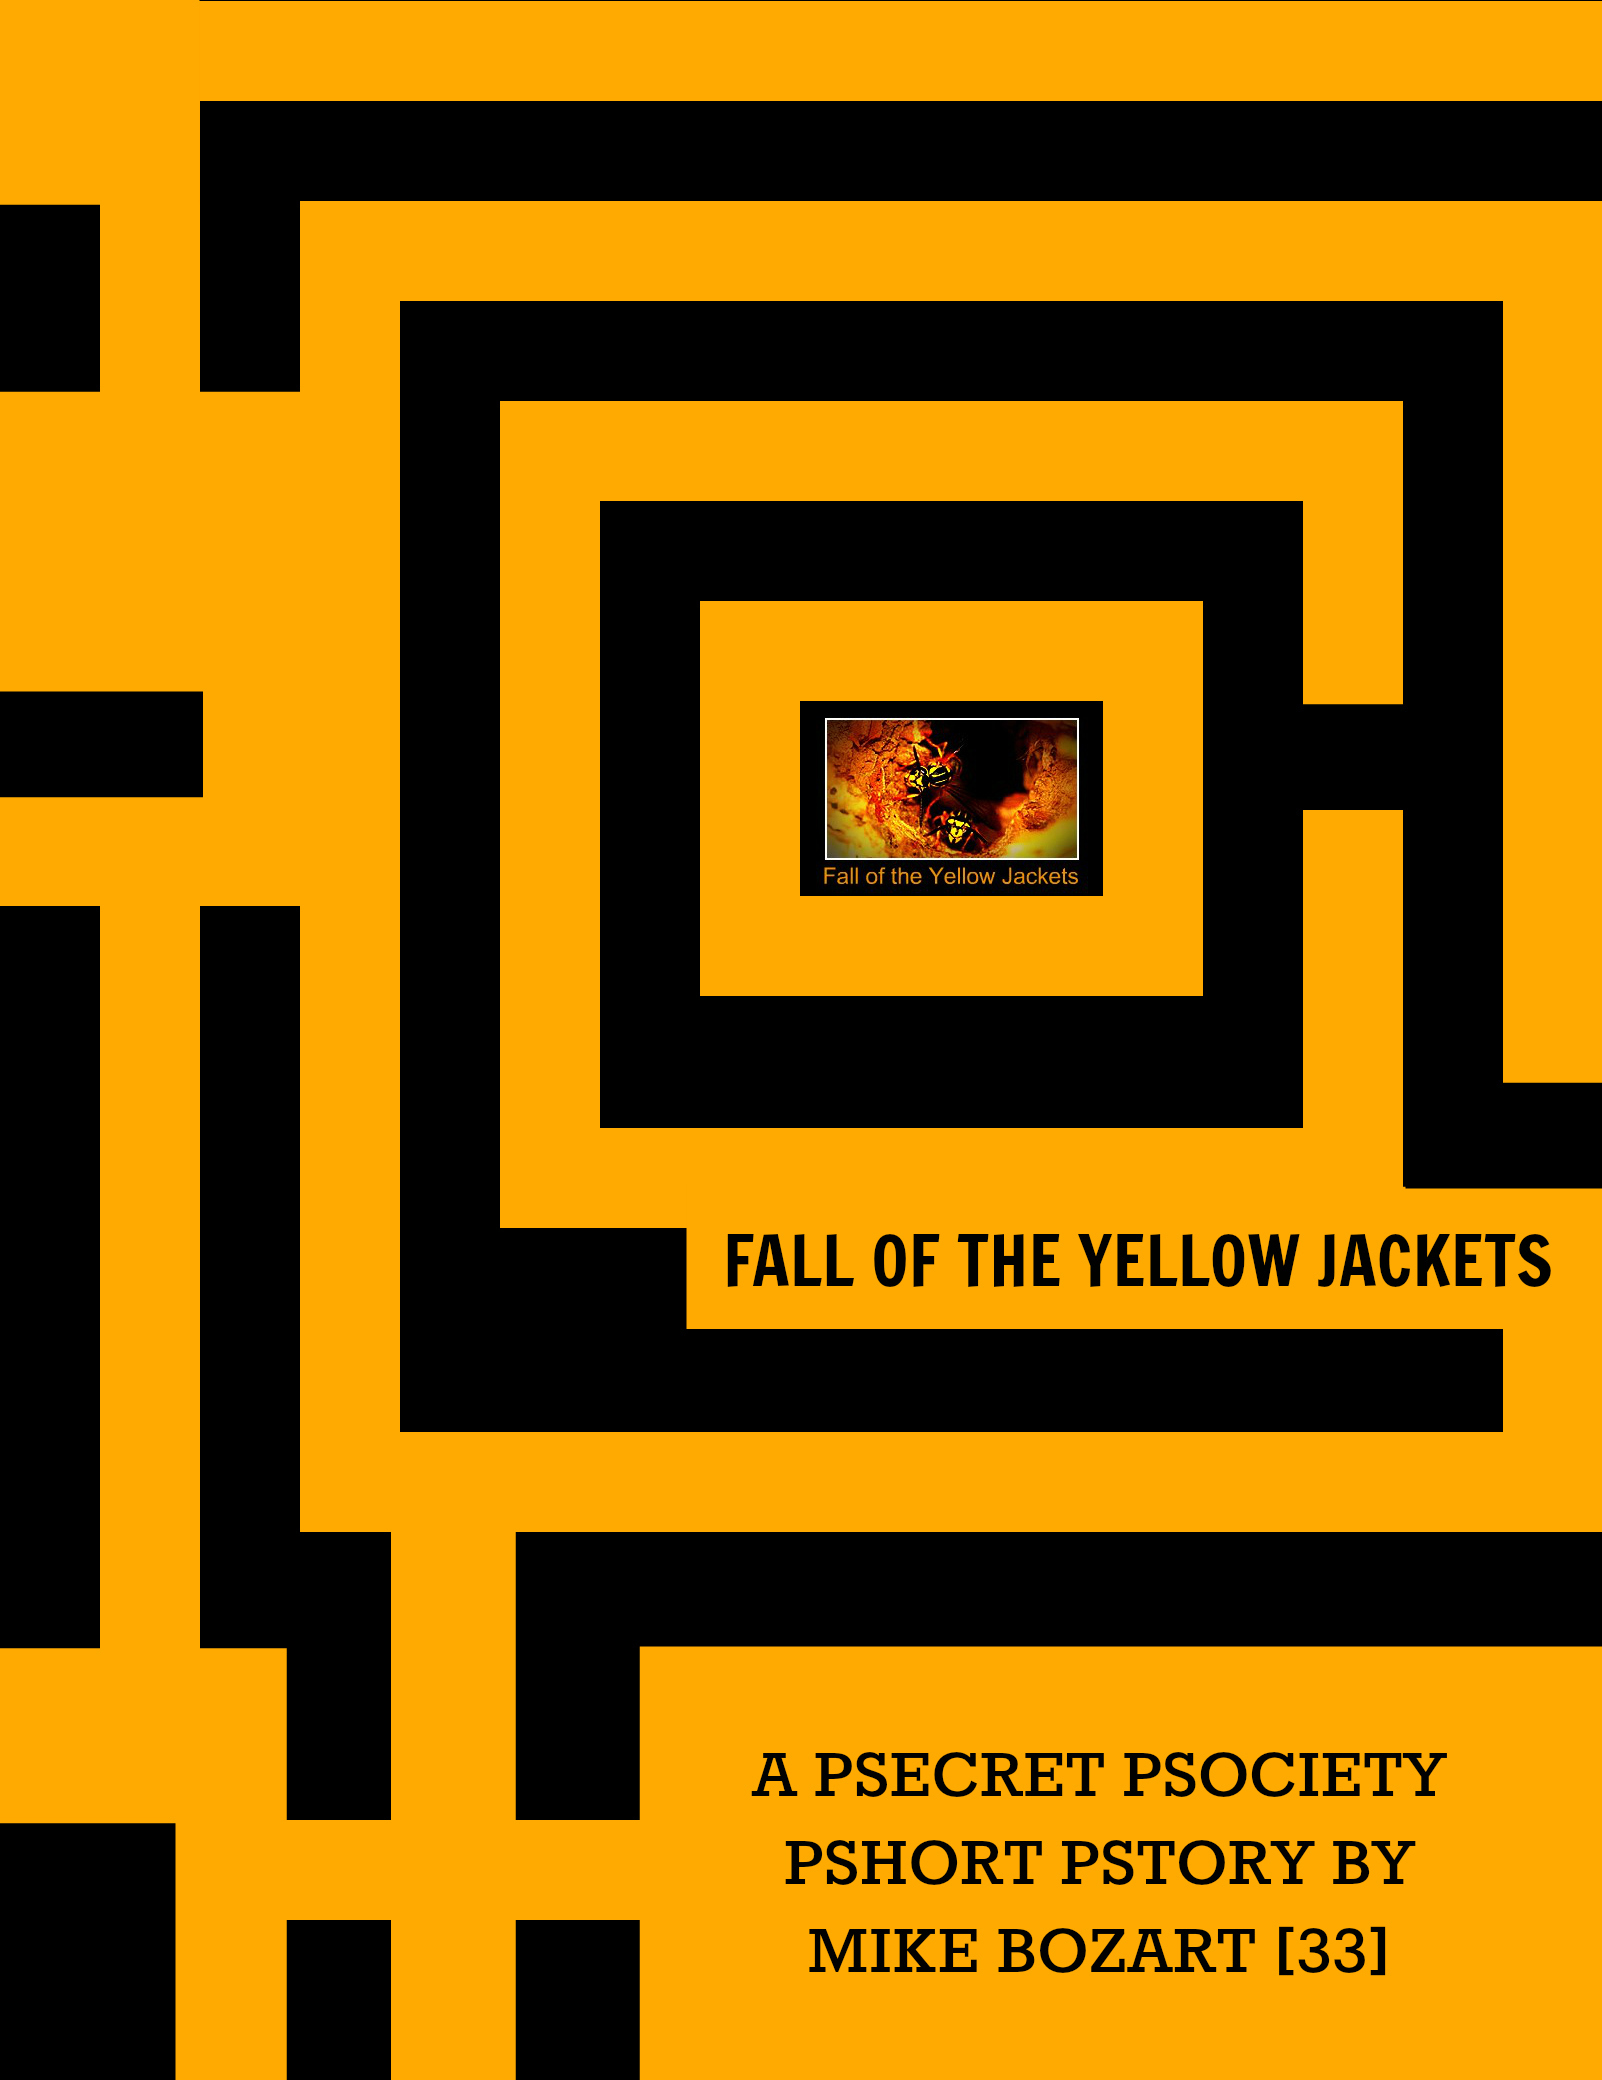 Fall of the Yellow Jackets  by  Mike Bozart